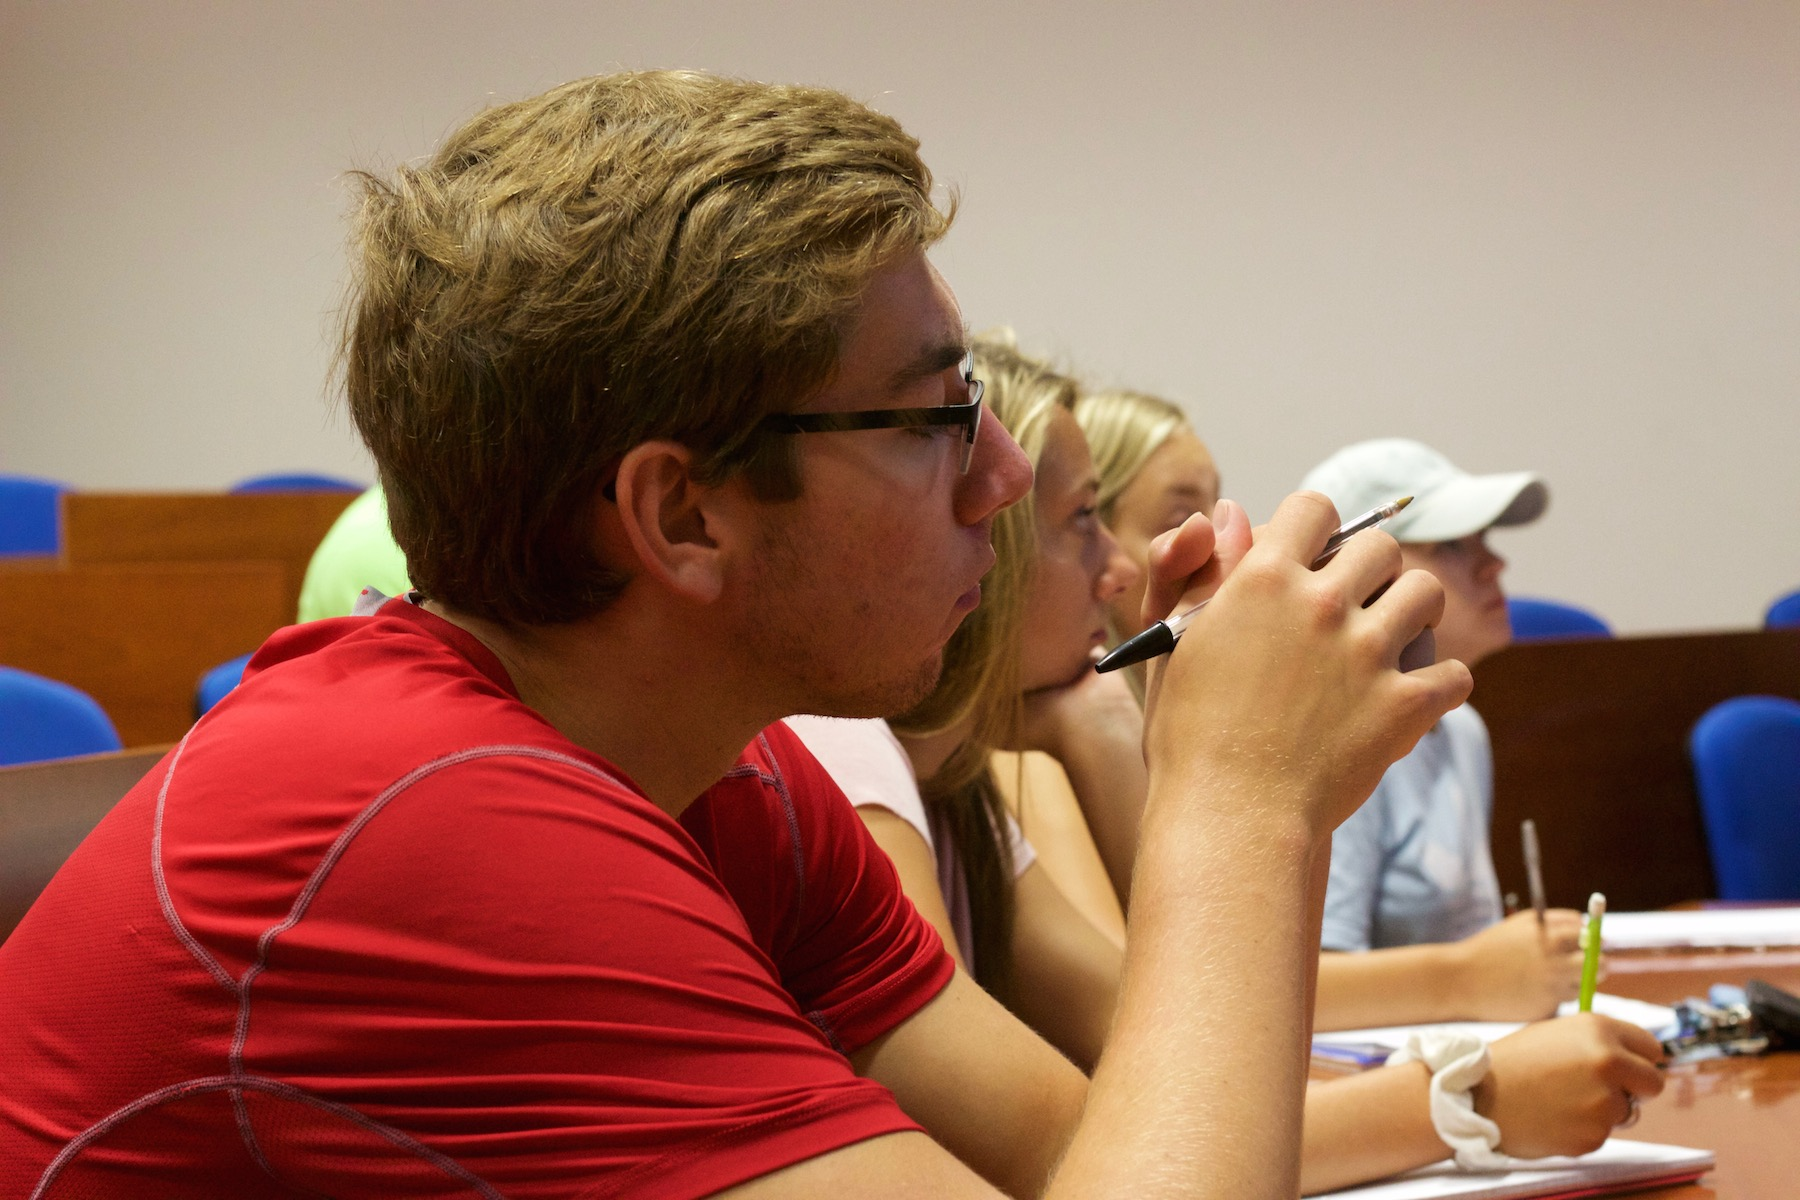 Four Iowa State students sit at desks listening to a class lecture during study abroad.